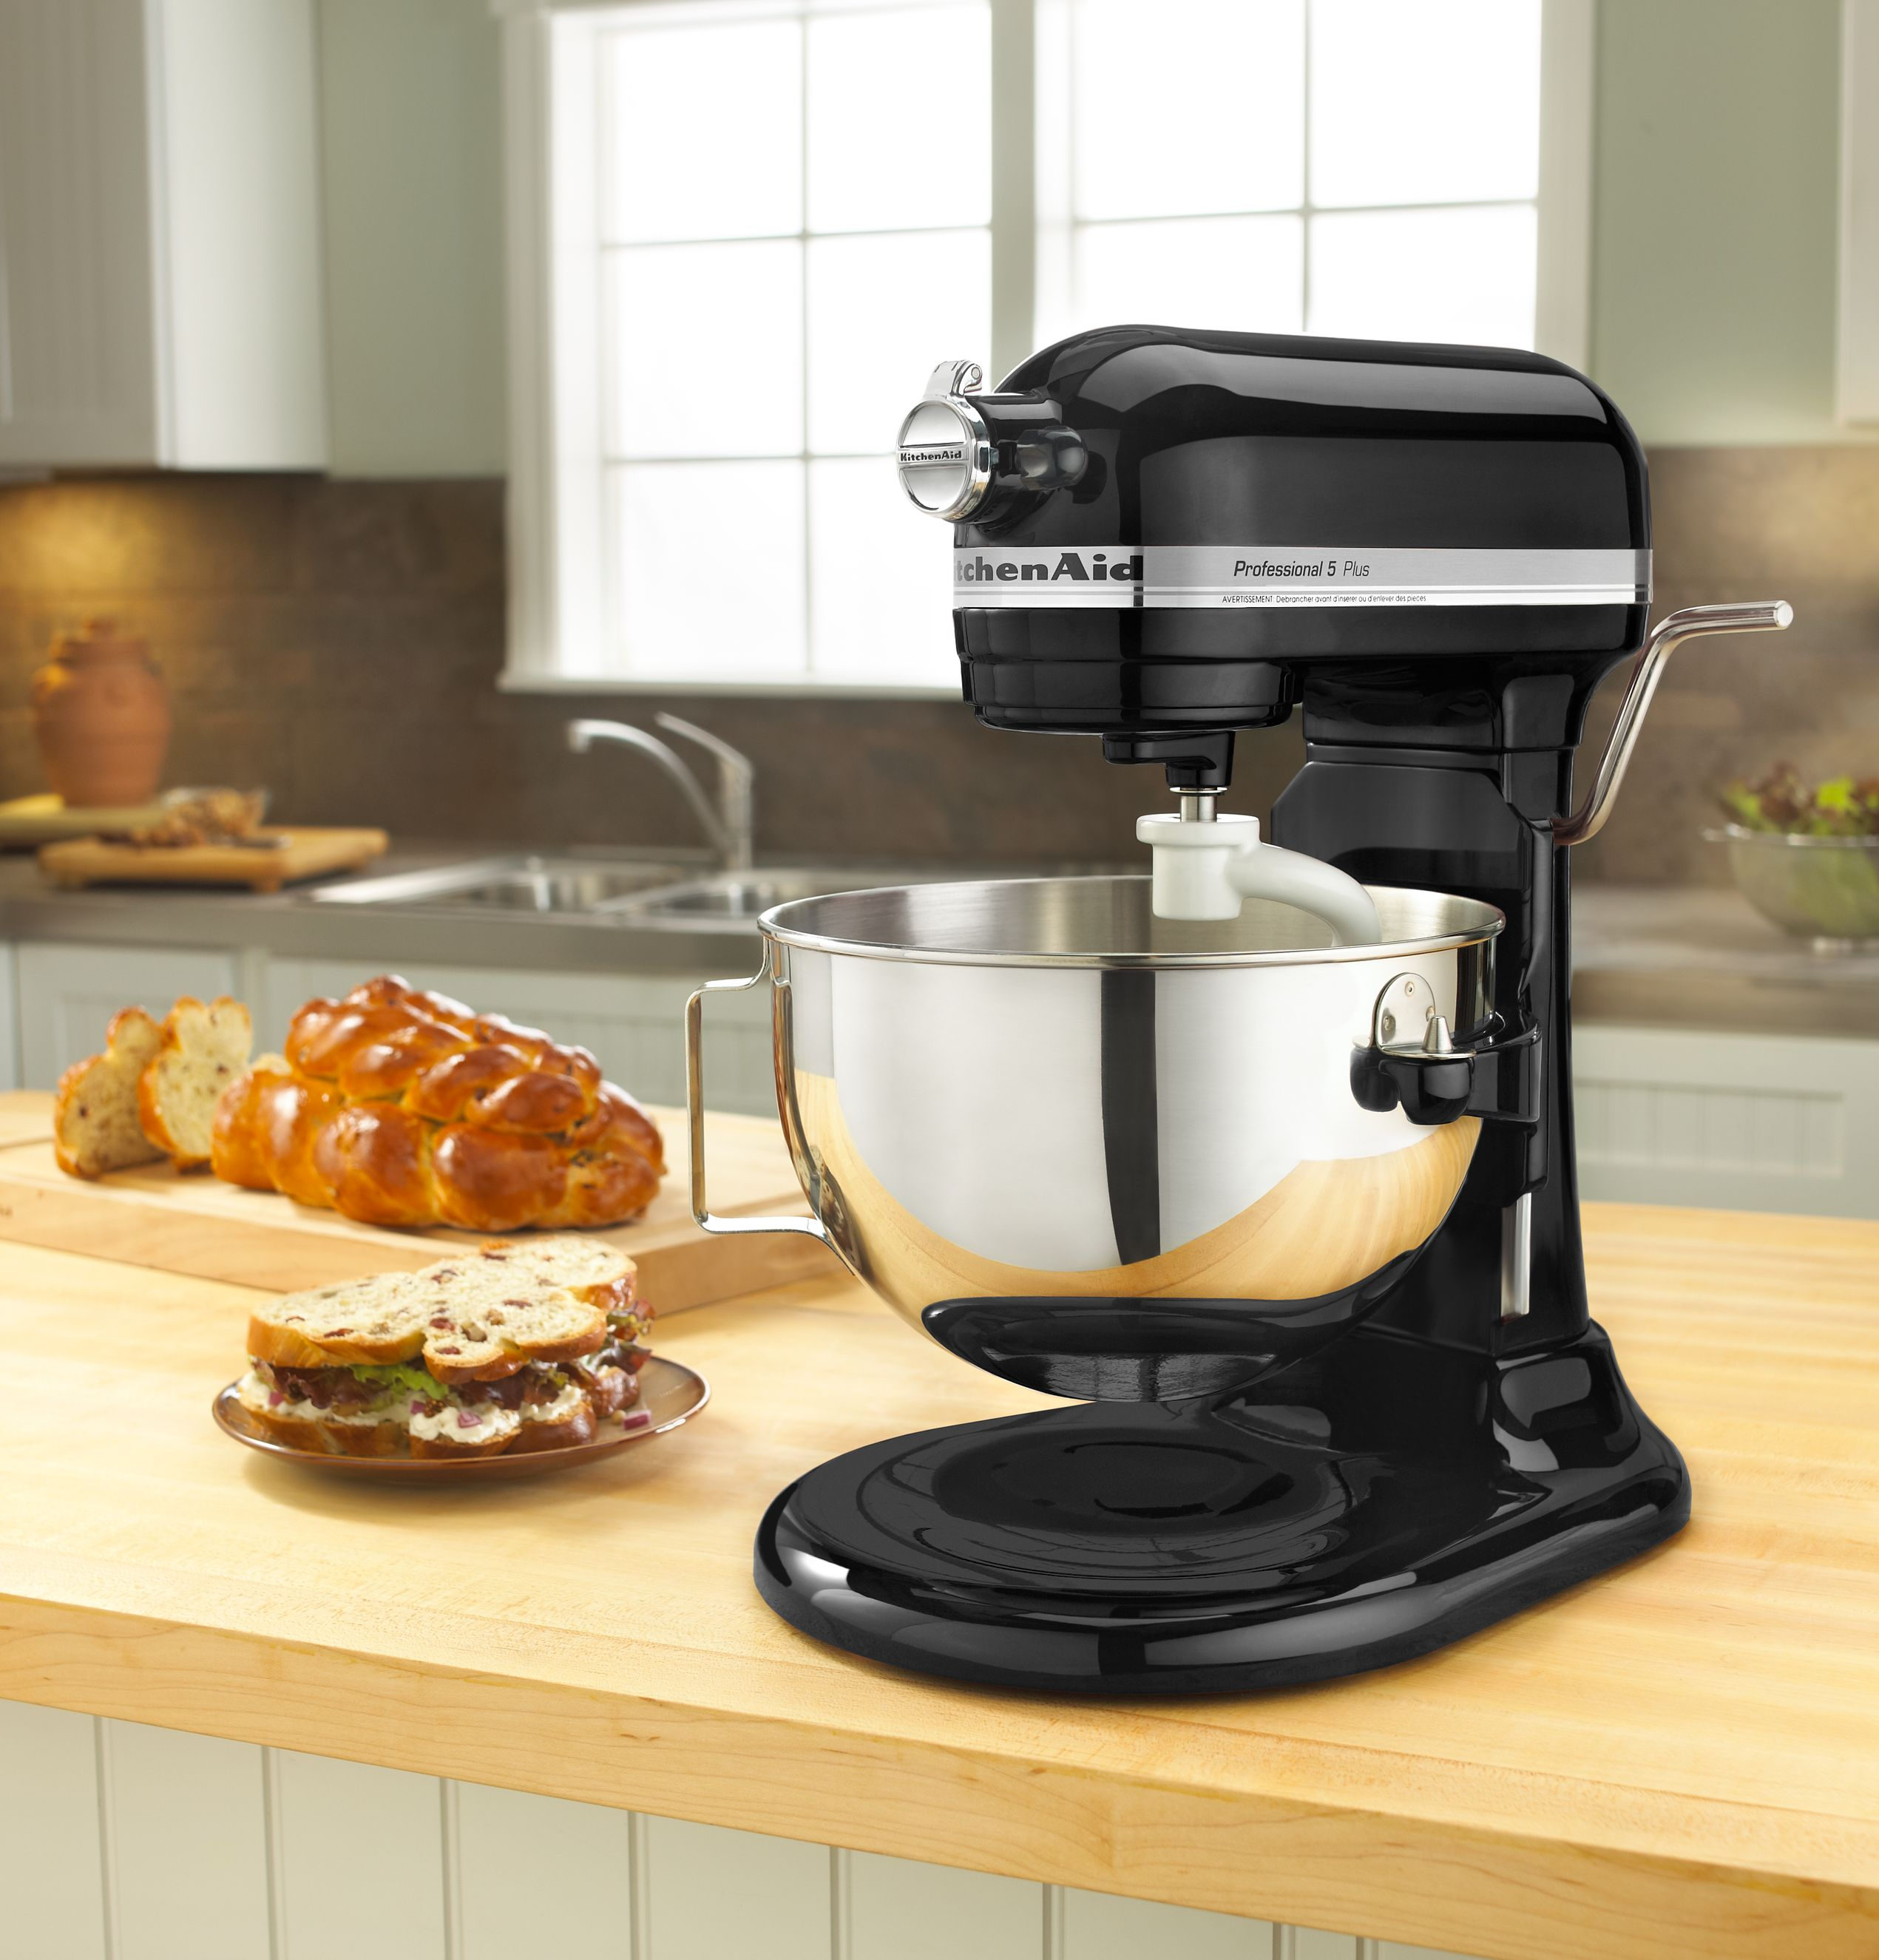 KitchenAid-Refurbished-Professional-5-Plus-Series-Bowl-Lift-Stand-Mixer thumbnail 11